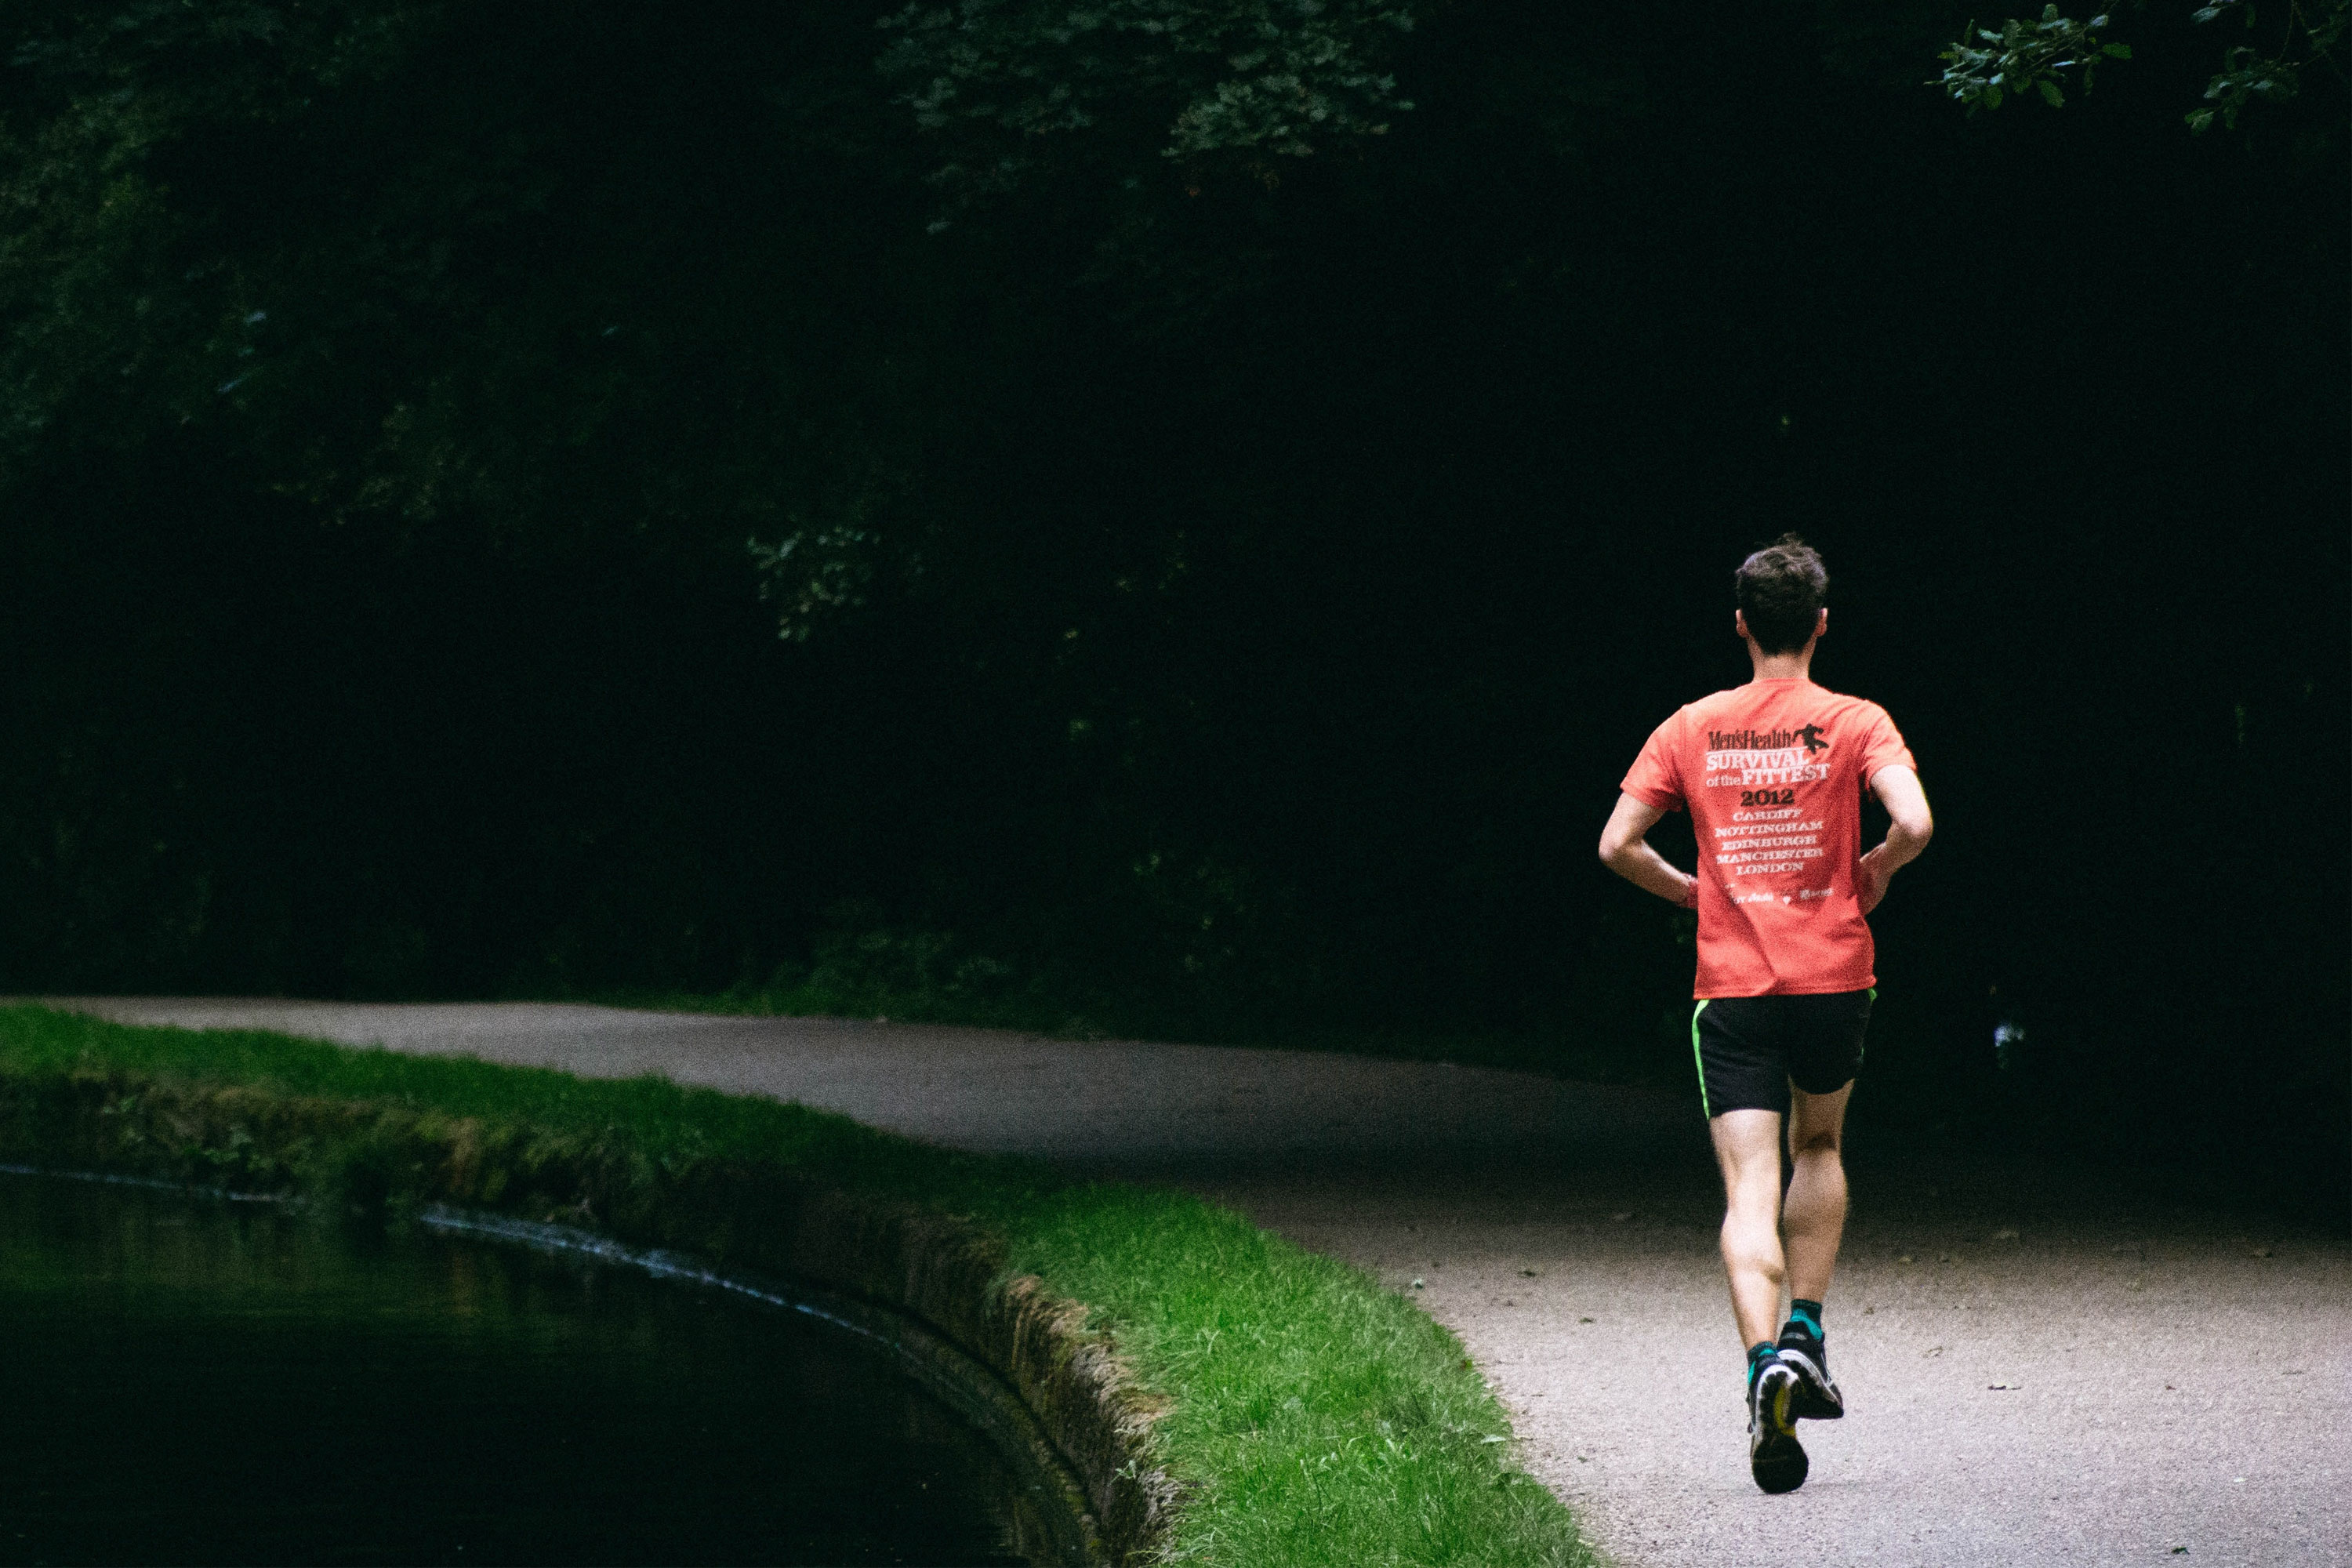 man running along gravel trail wearing red t-shirt